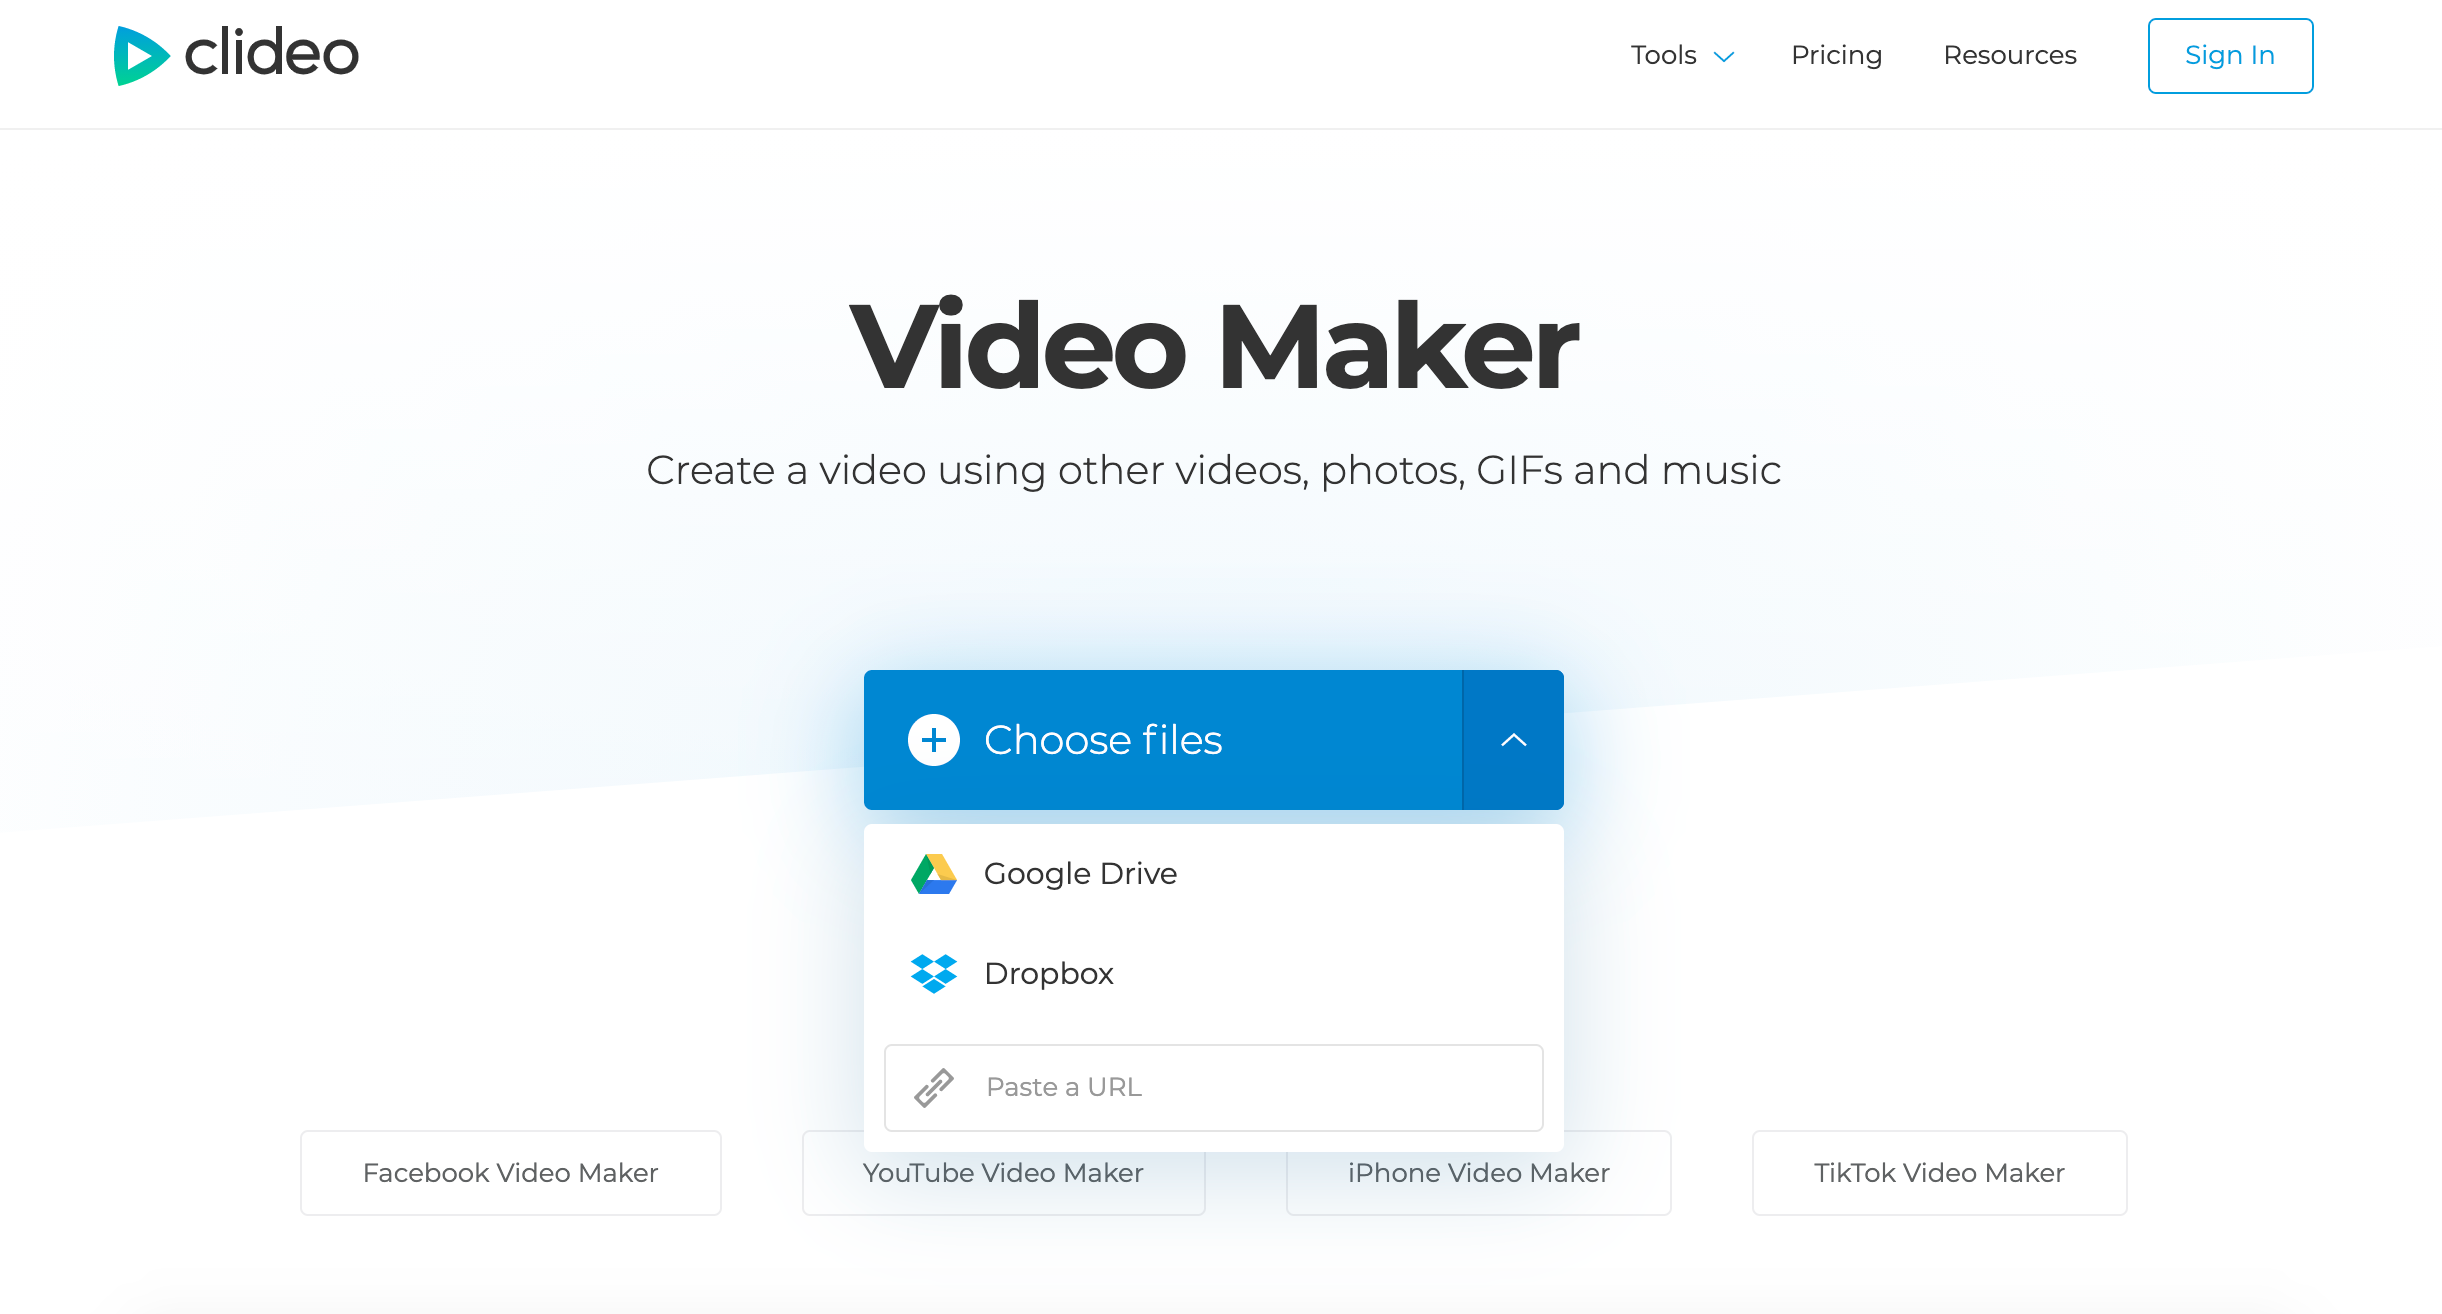 Upload your photos to make video